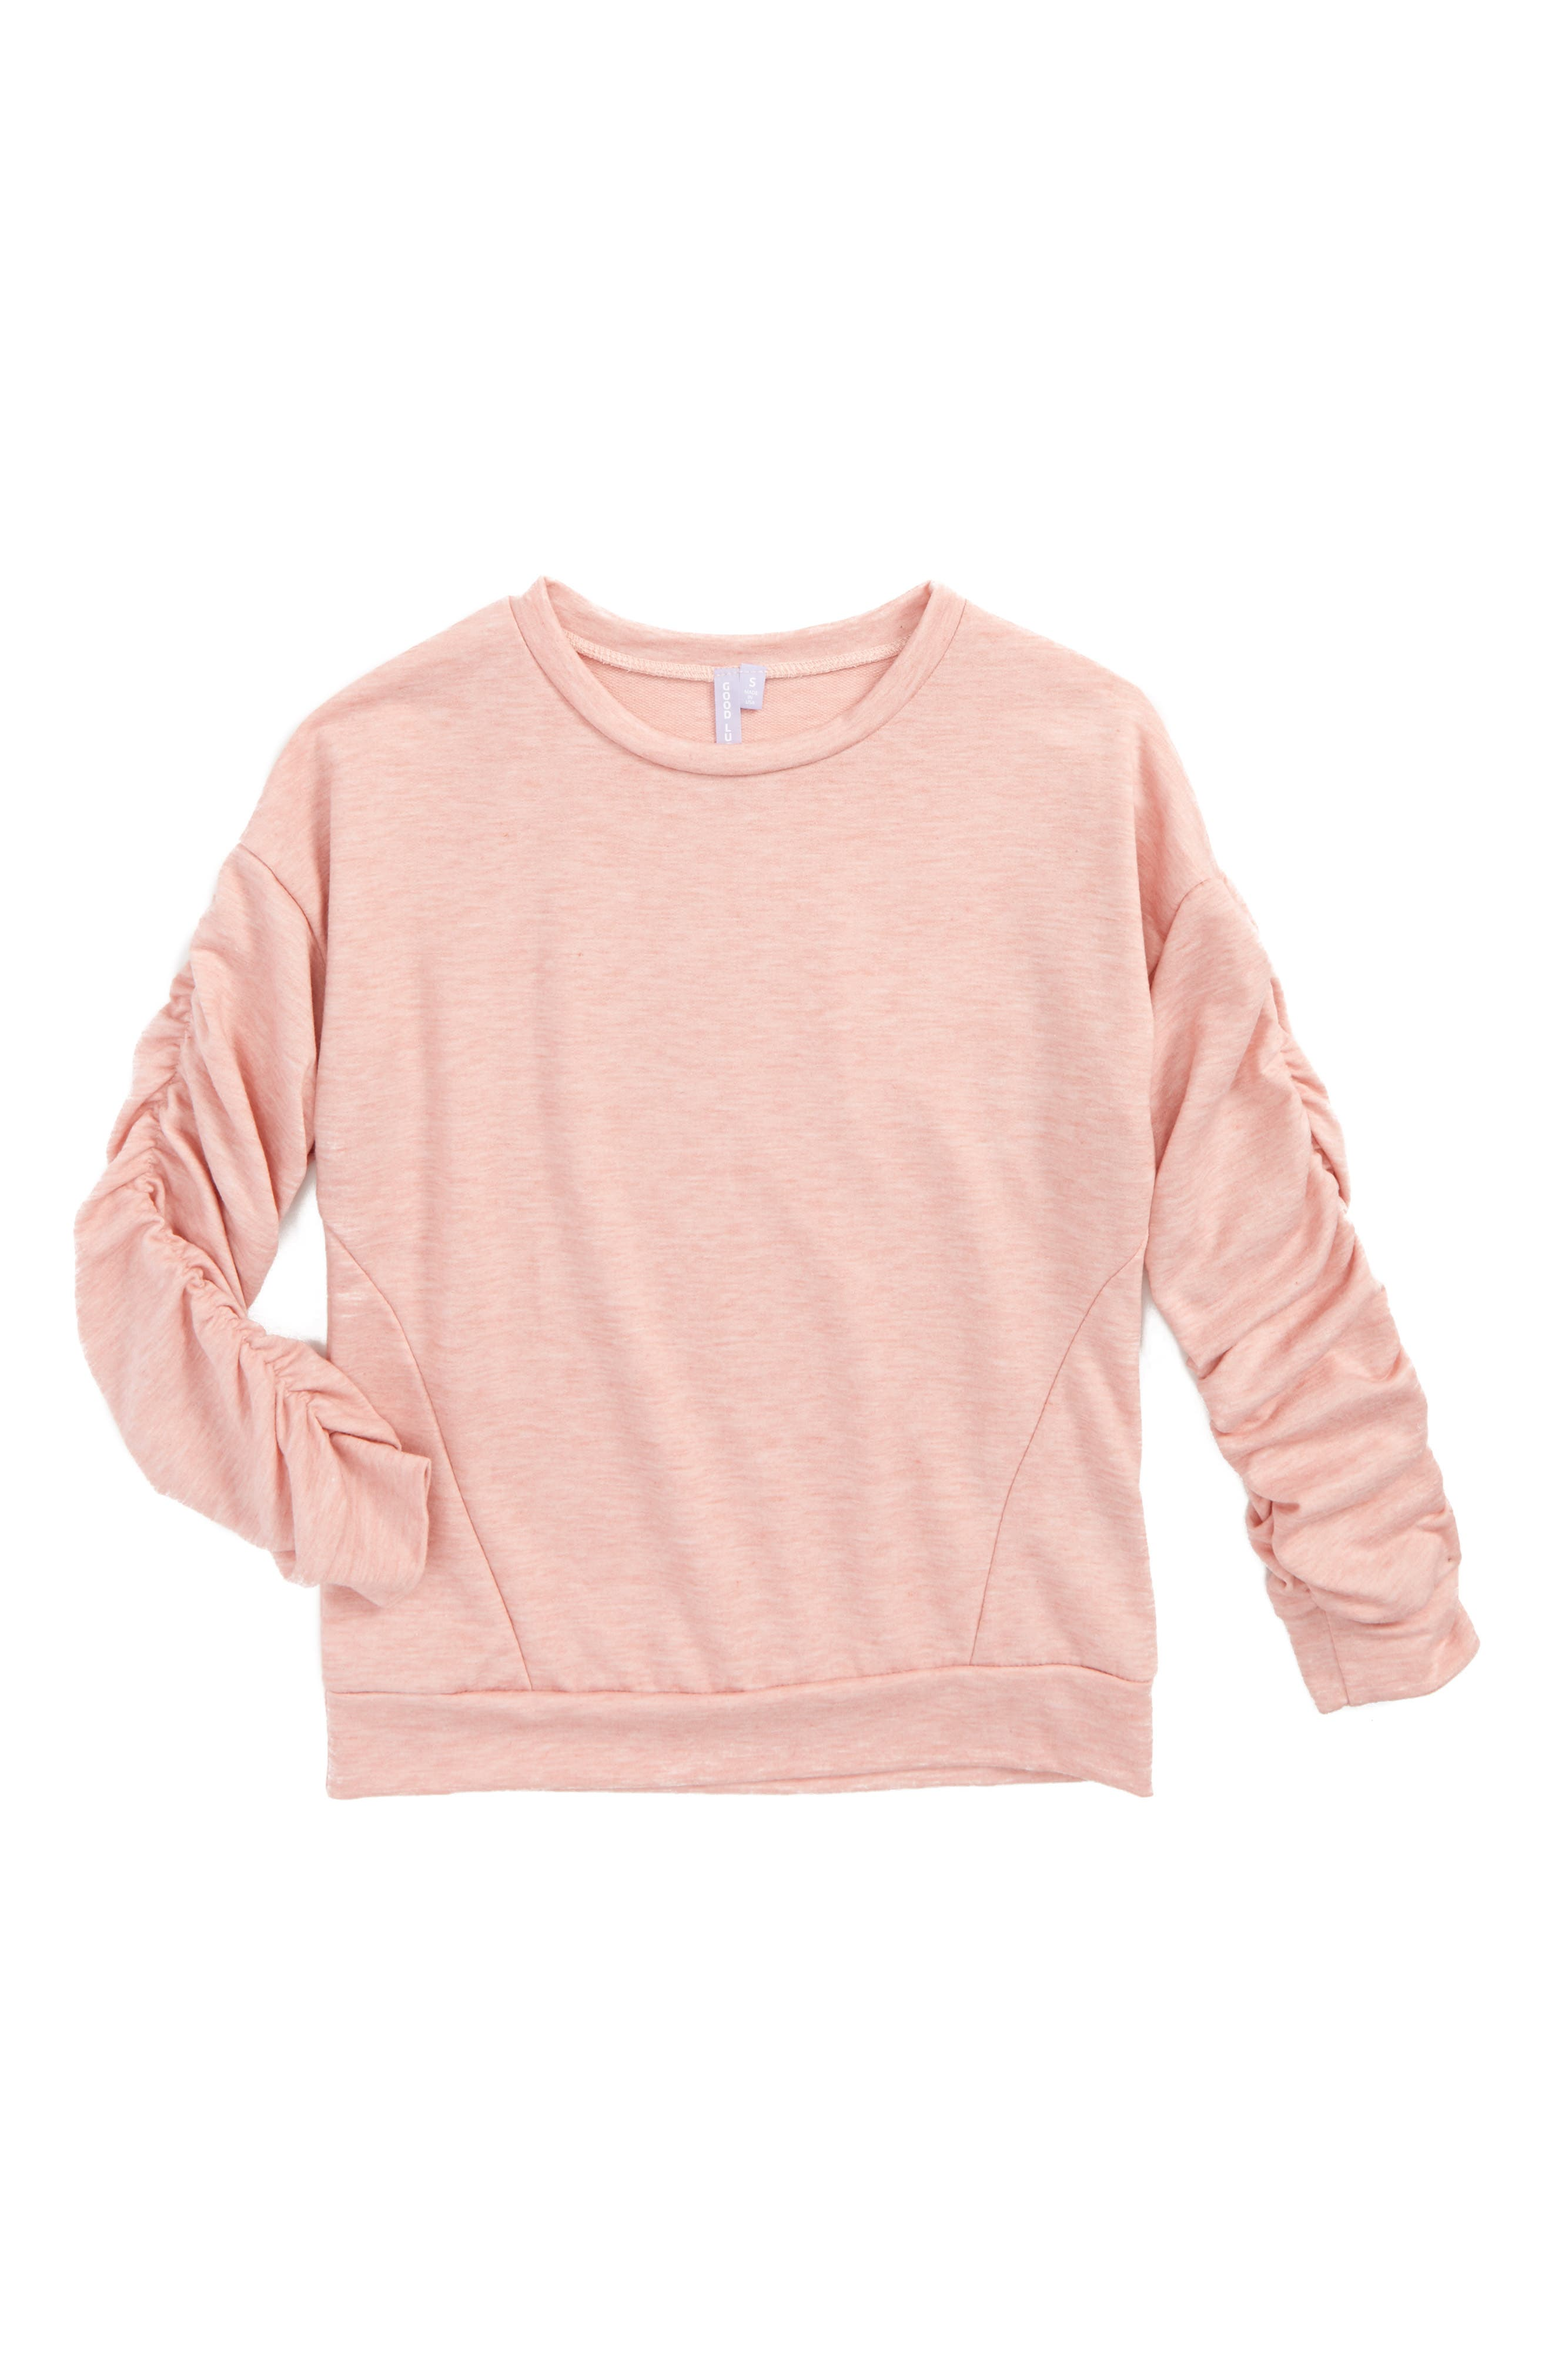 Ruched Sleeve Sweatshirt,                         Main,                         color, Heather Old Rose